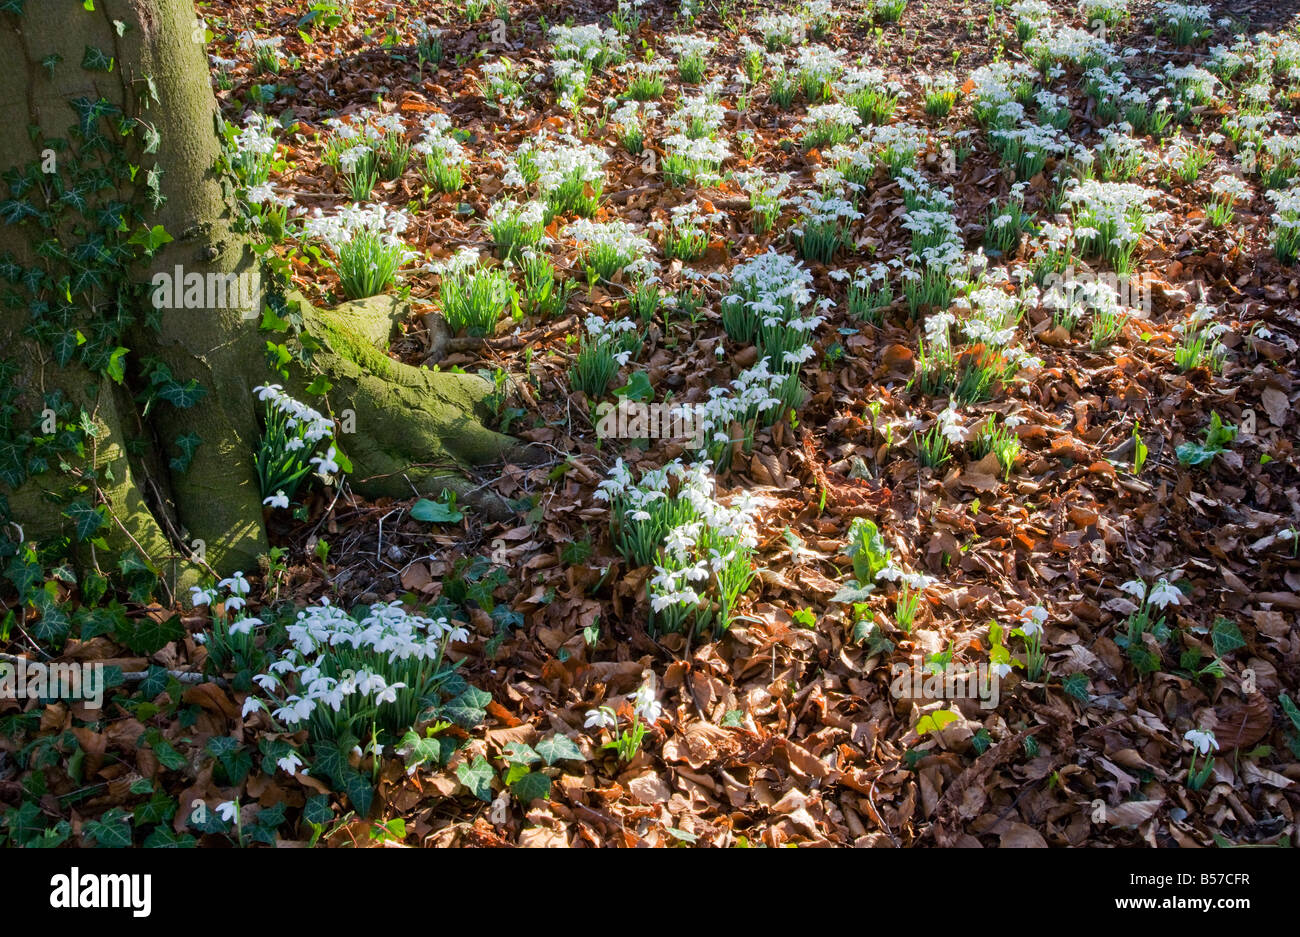 Snowdrops, Galanthus nivalis, growing at the base of a tree in woodland in late winter, early spring, - Stock Image